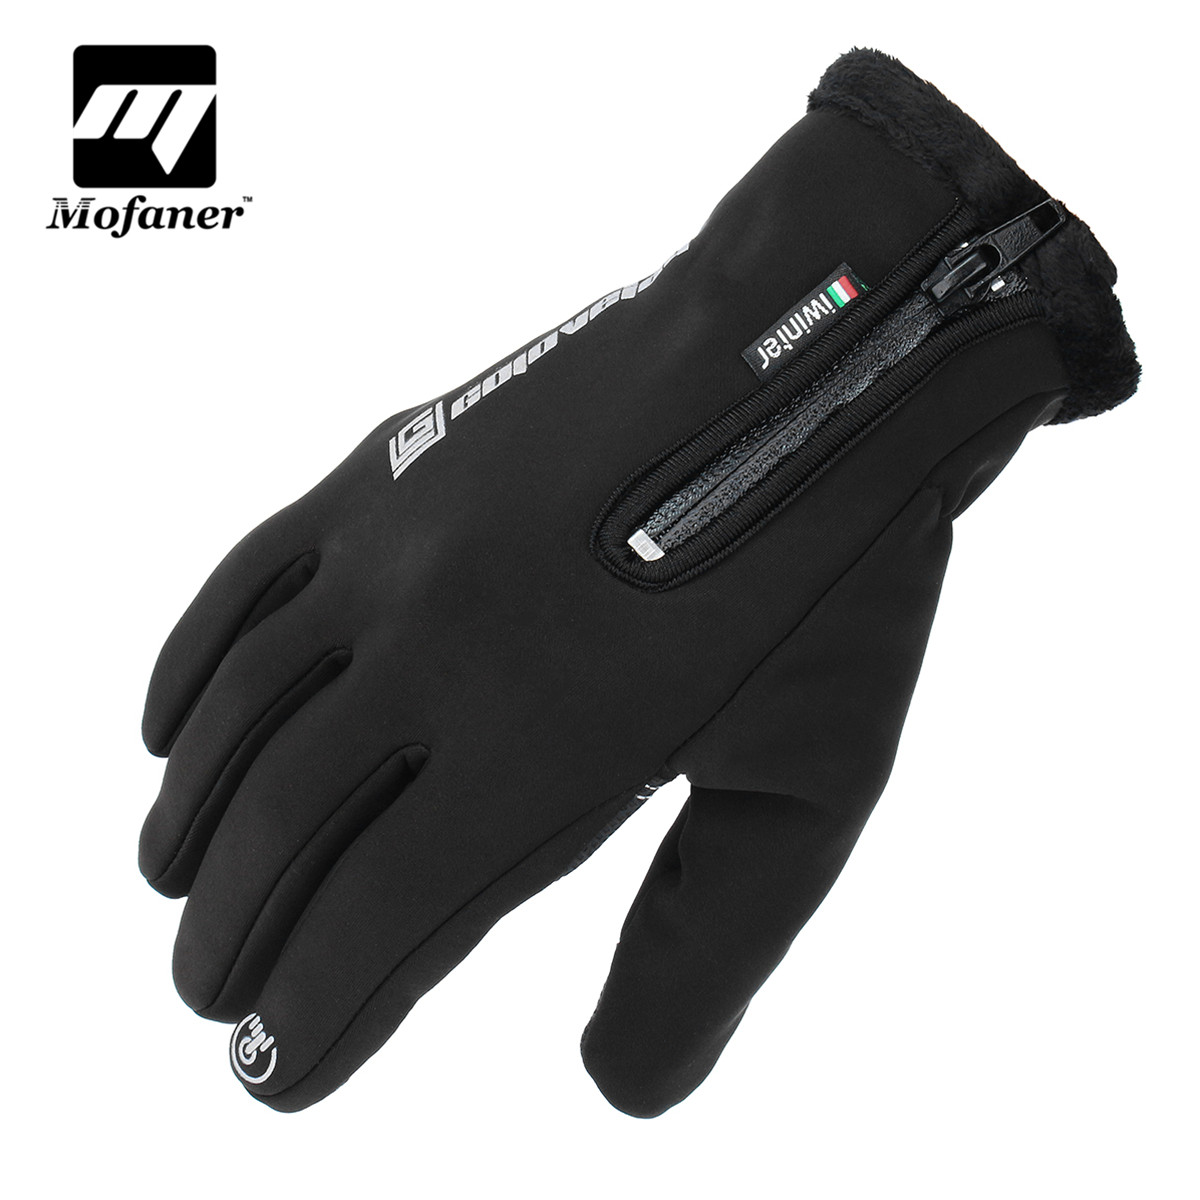 Mofaner Waterproof Motorcycle Touch Screen Gloves Windproof Fashion Cycling Outdoors Full Finger Gloves Keep Warm Glove